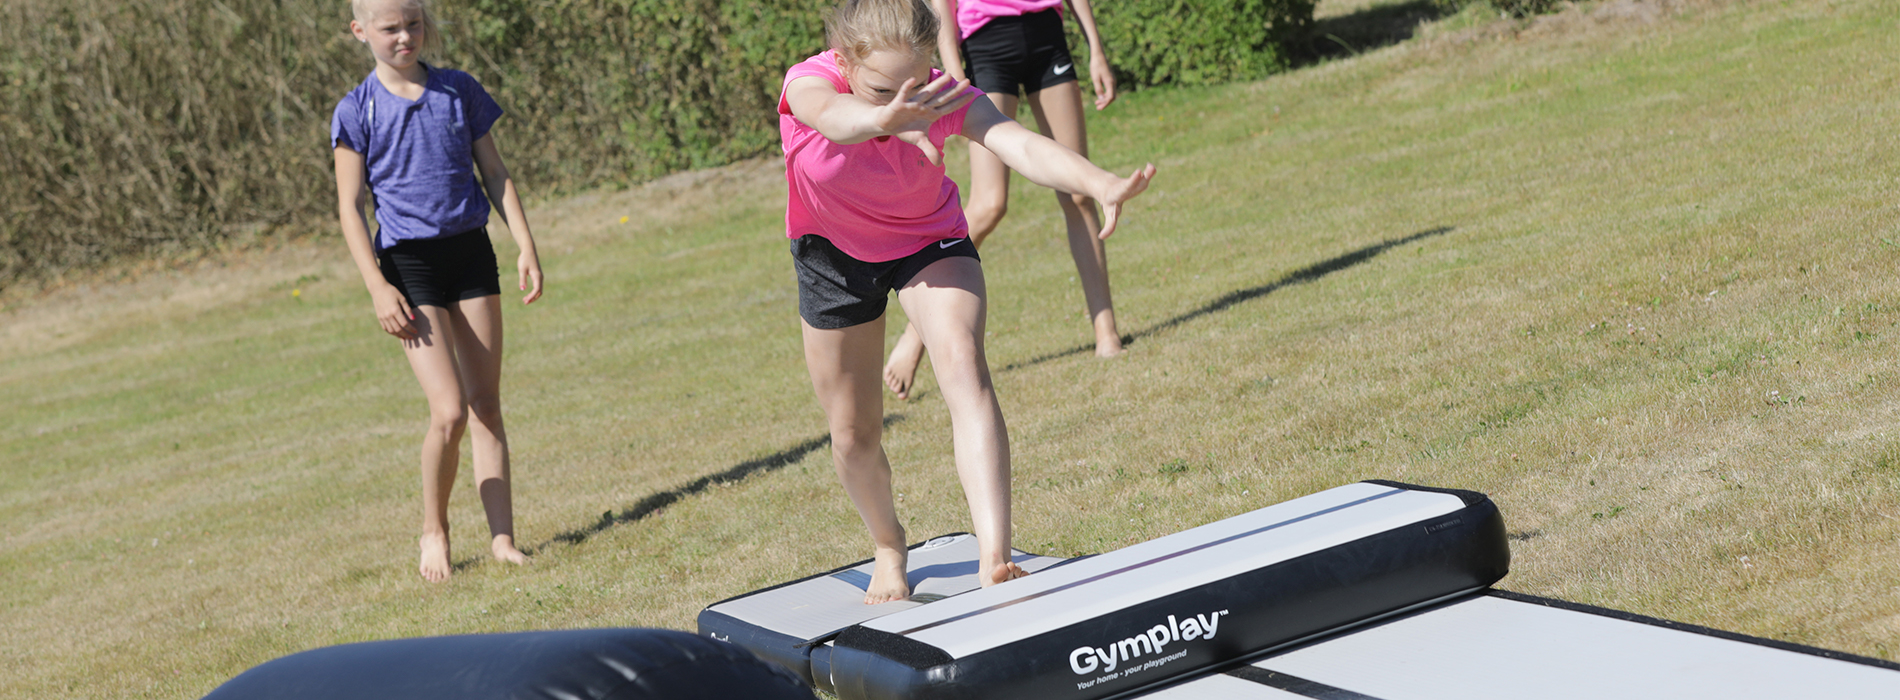 training on gymplay airtrack trainer kit